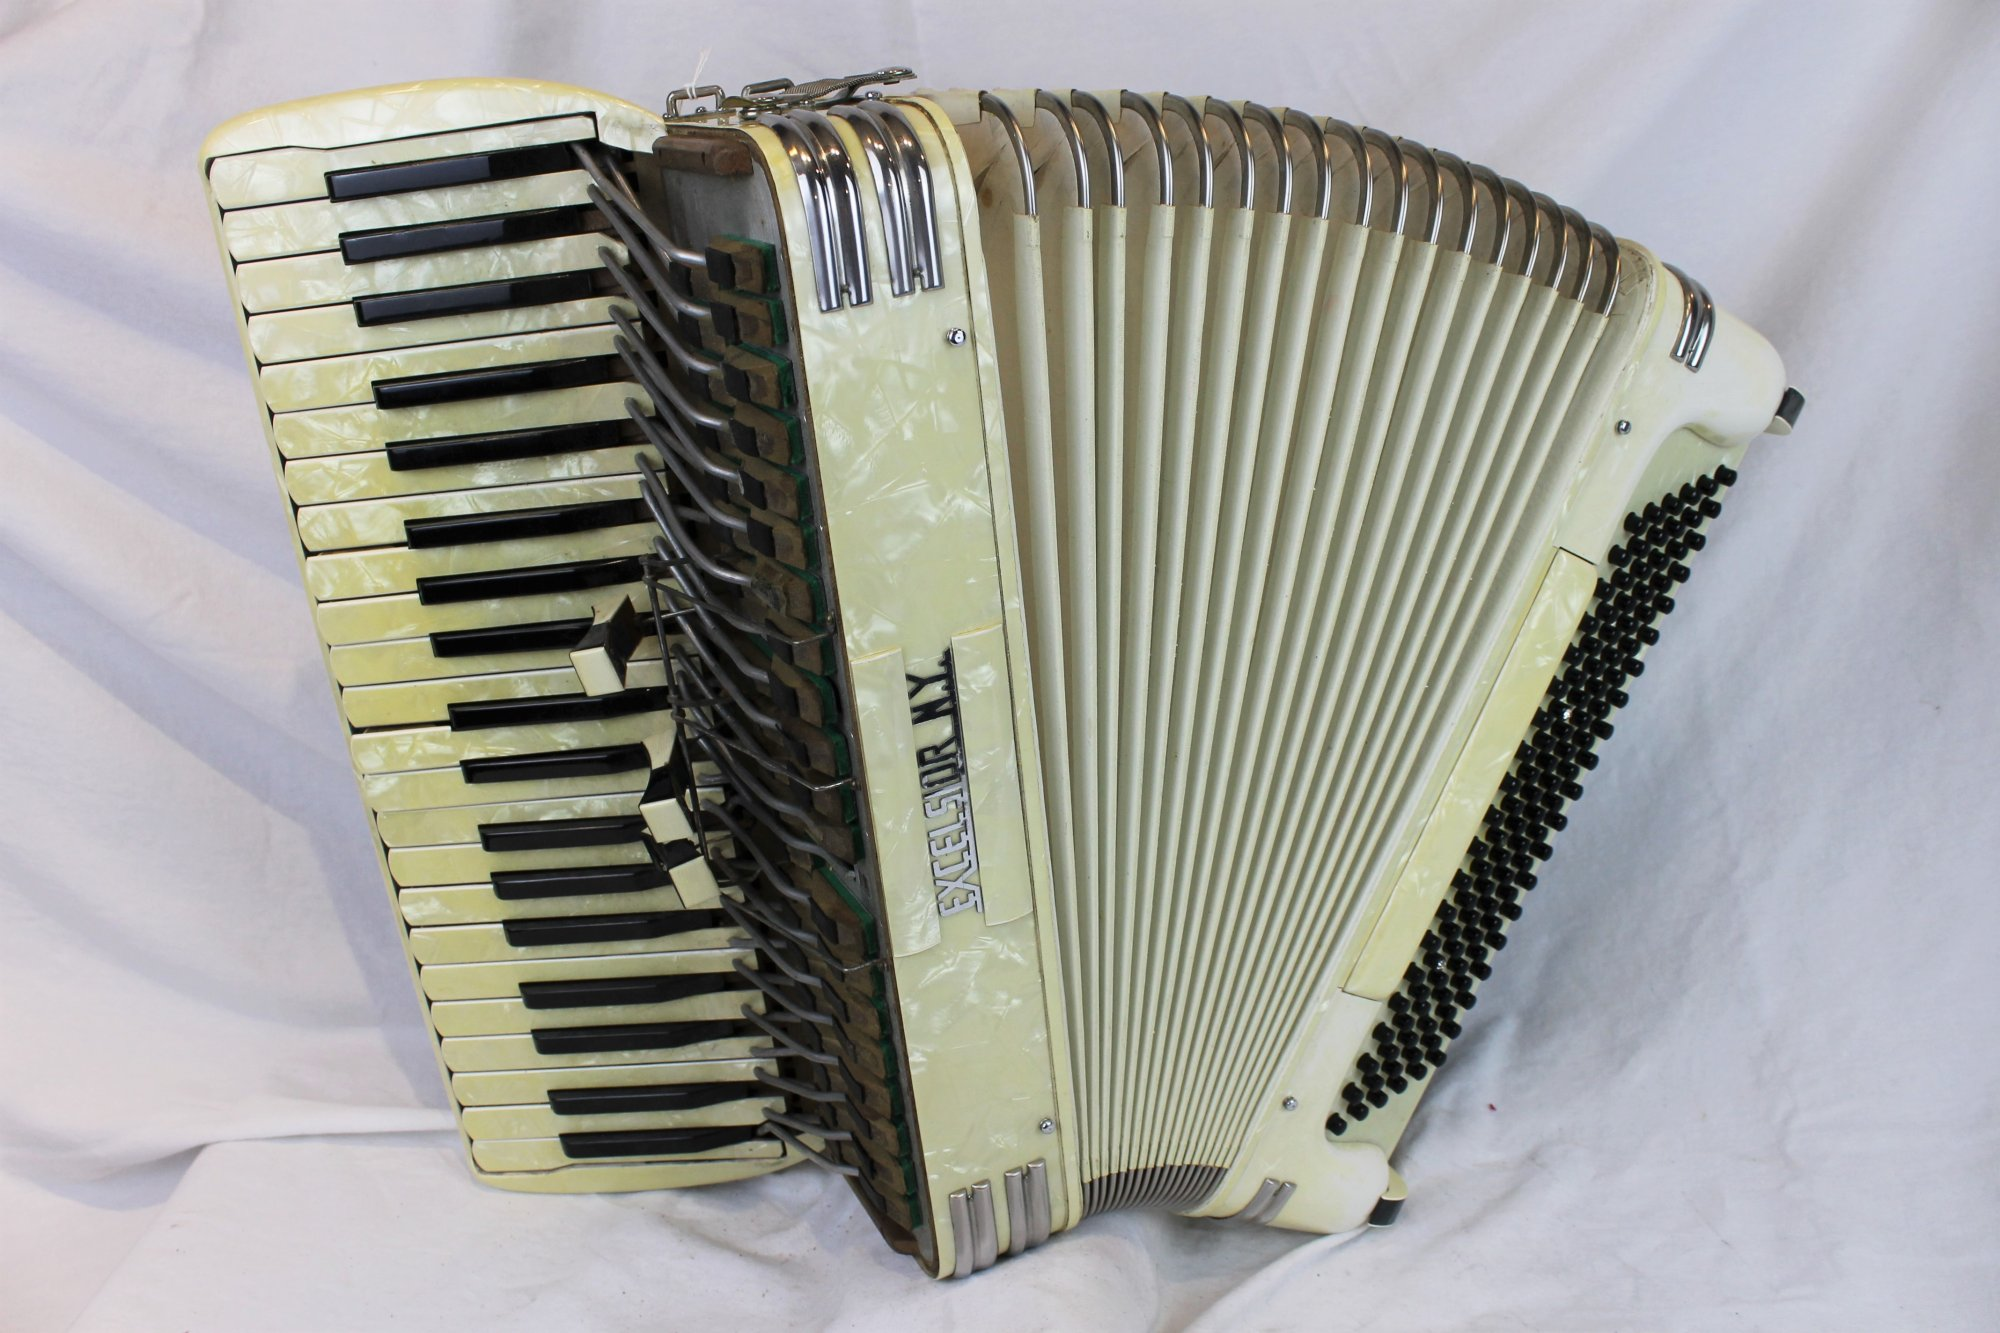 6066 - Cream Excelsior Piano Accordion LMH 41 120 - For Parts or Repair